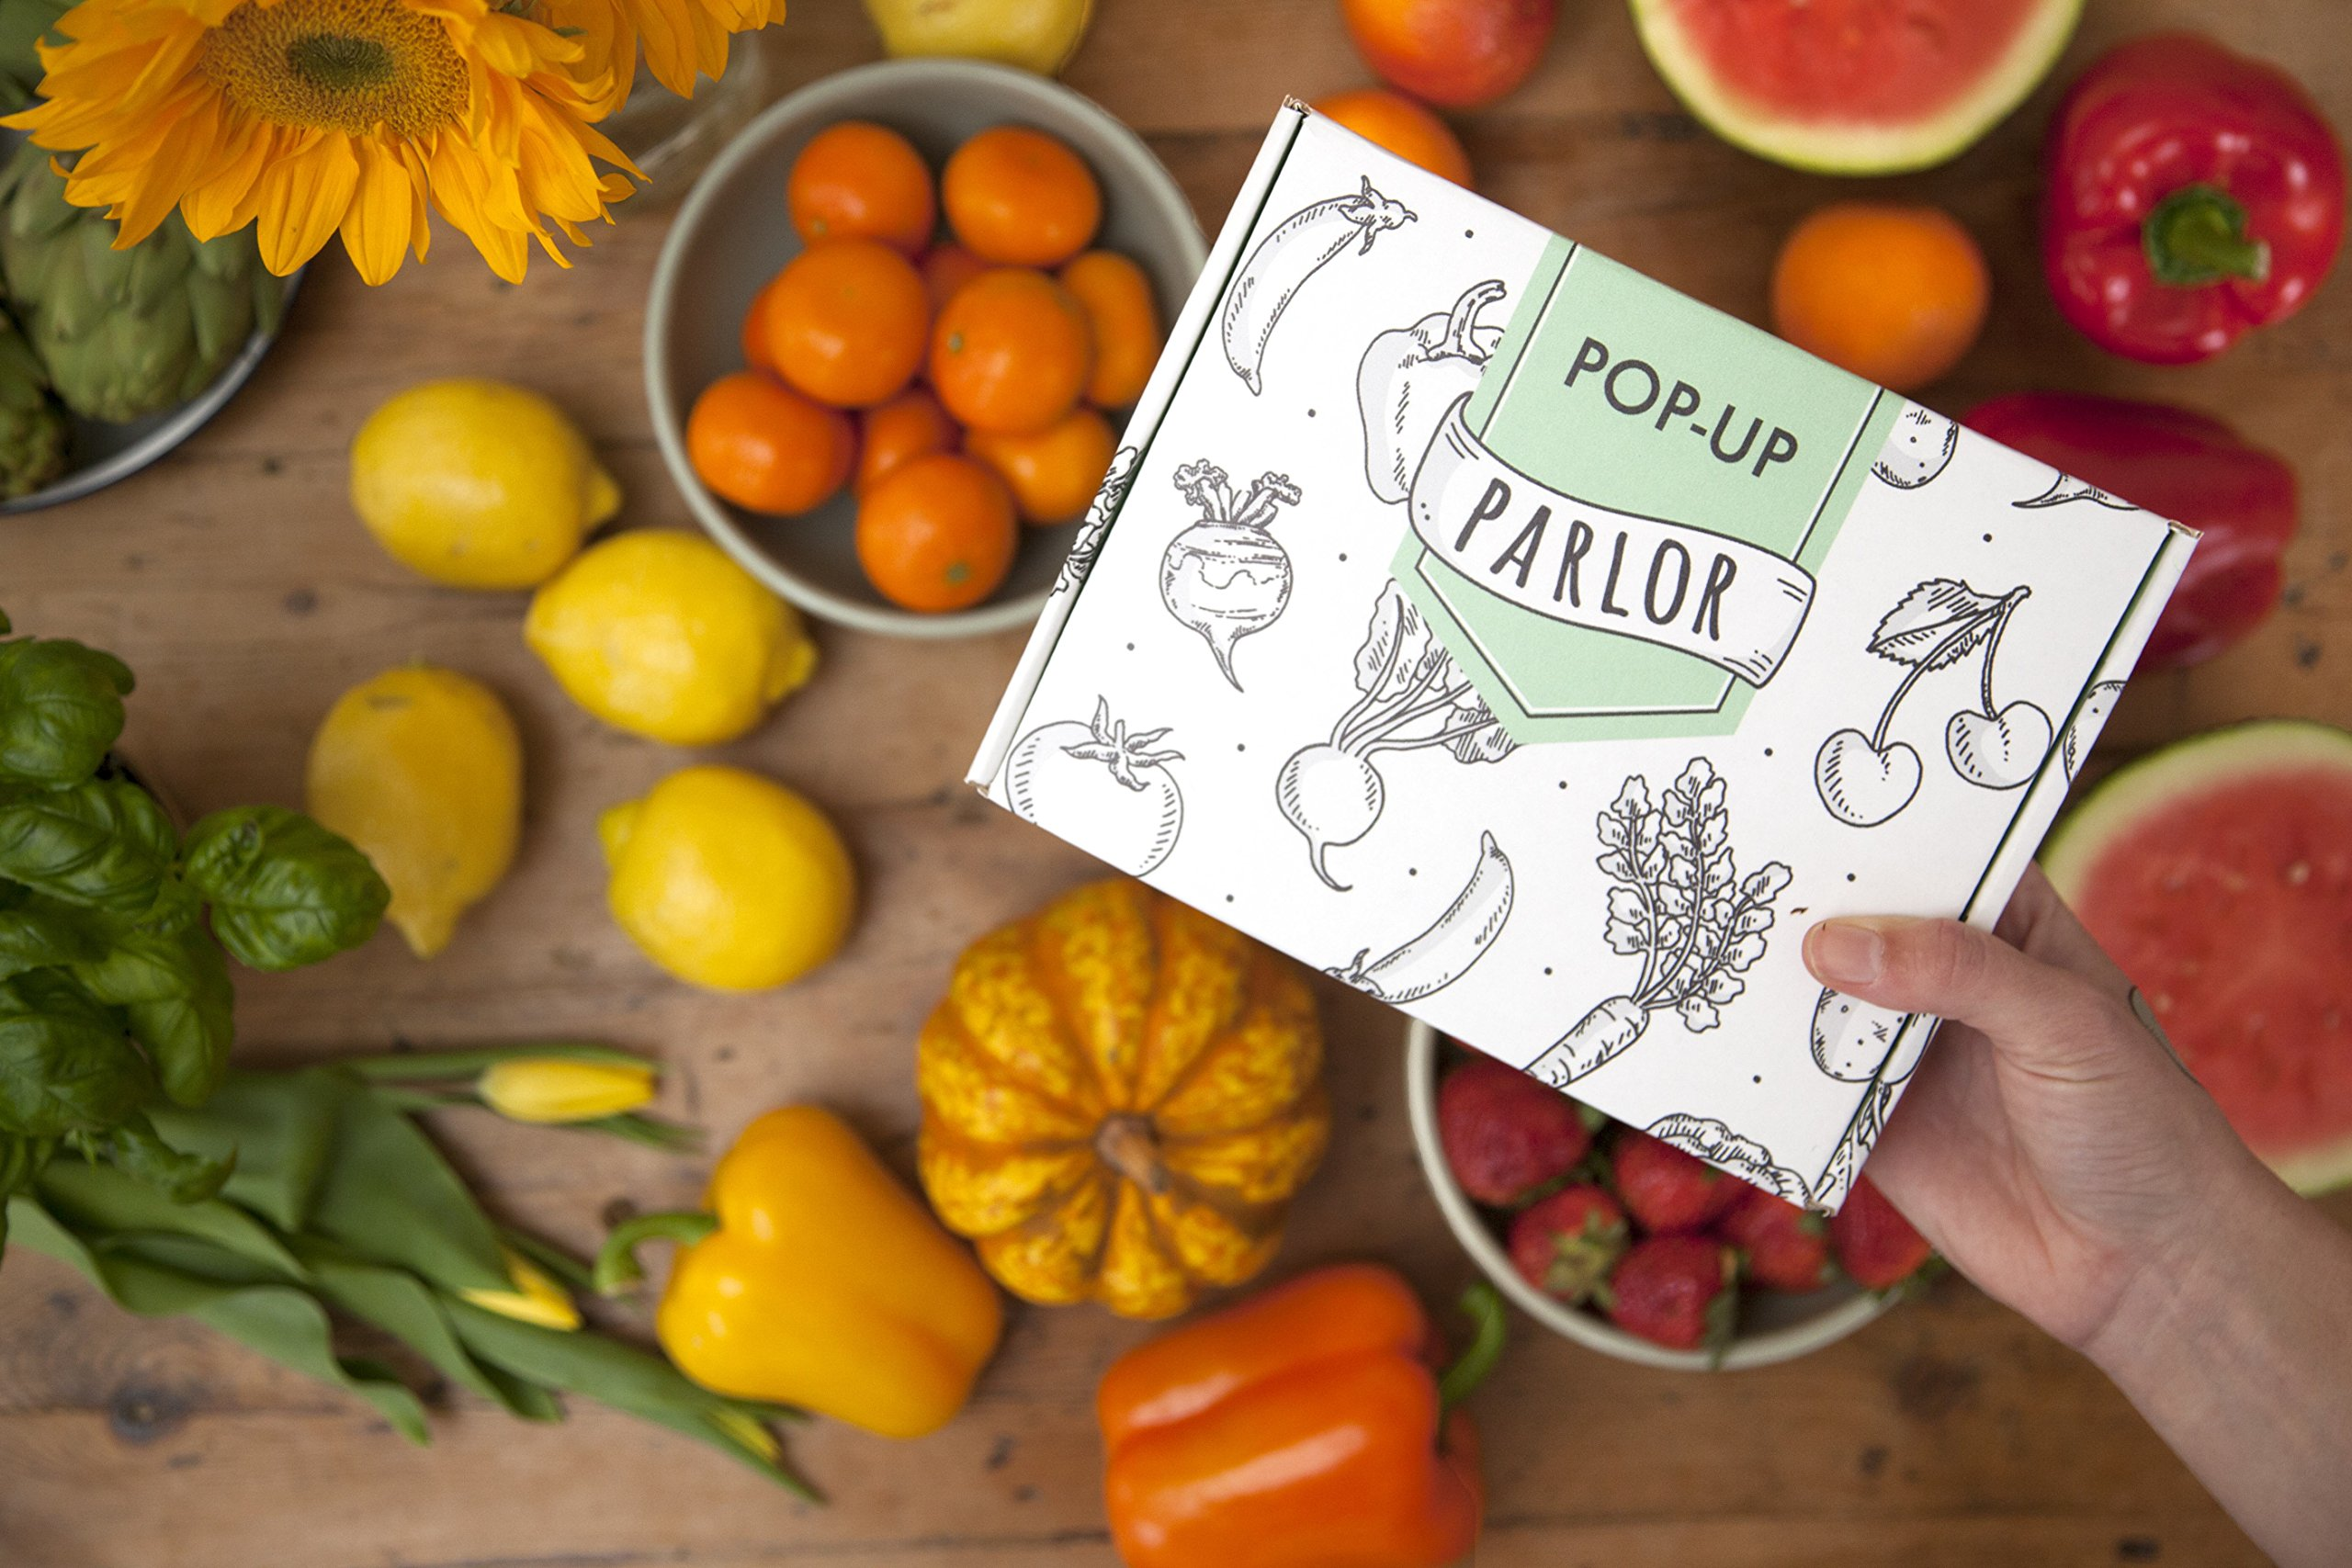 Tater Tats Pop-Up Tattoo Parlor: 225 Temporary Vegetable Tattoos